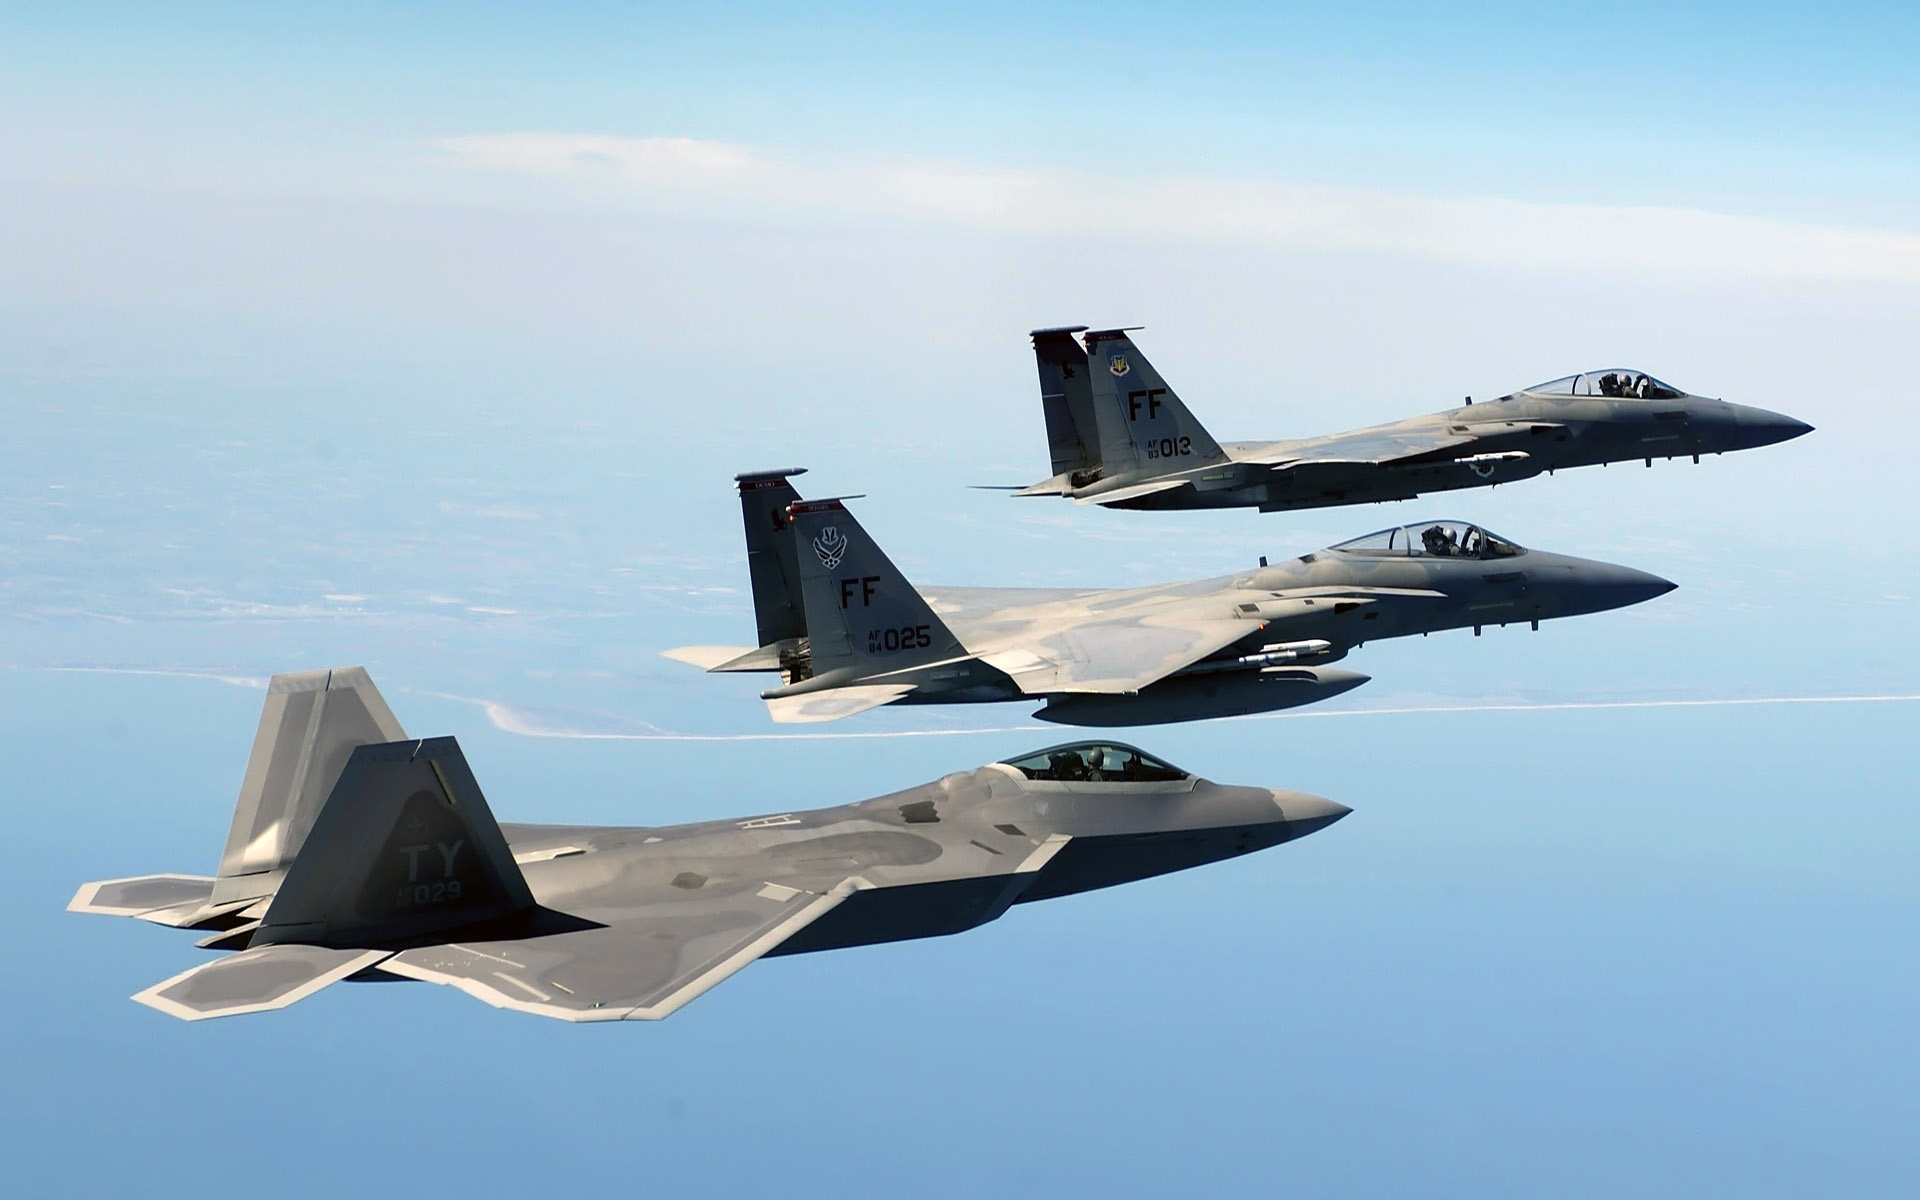 Lockheed Martin F-22 Raptor and McDonnell Douglas F-15 Eagle